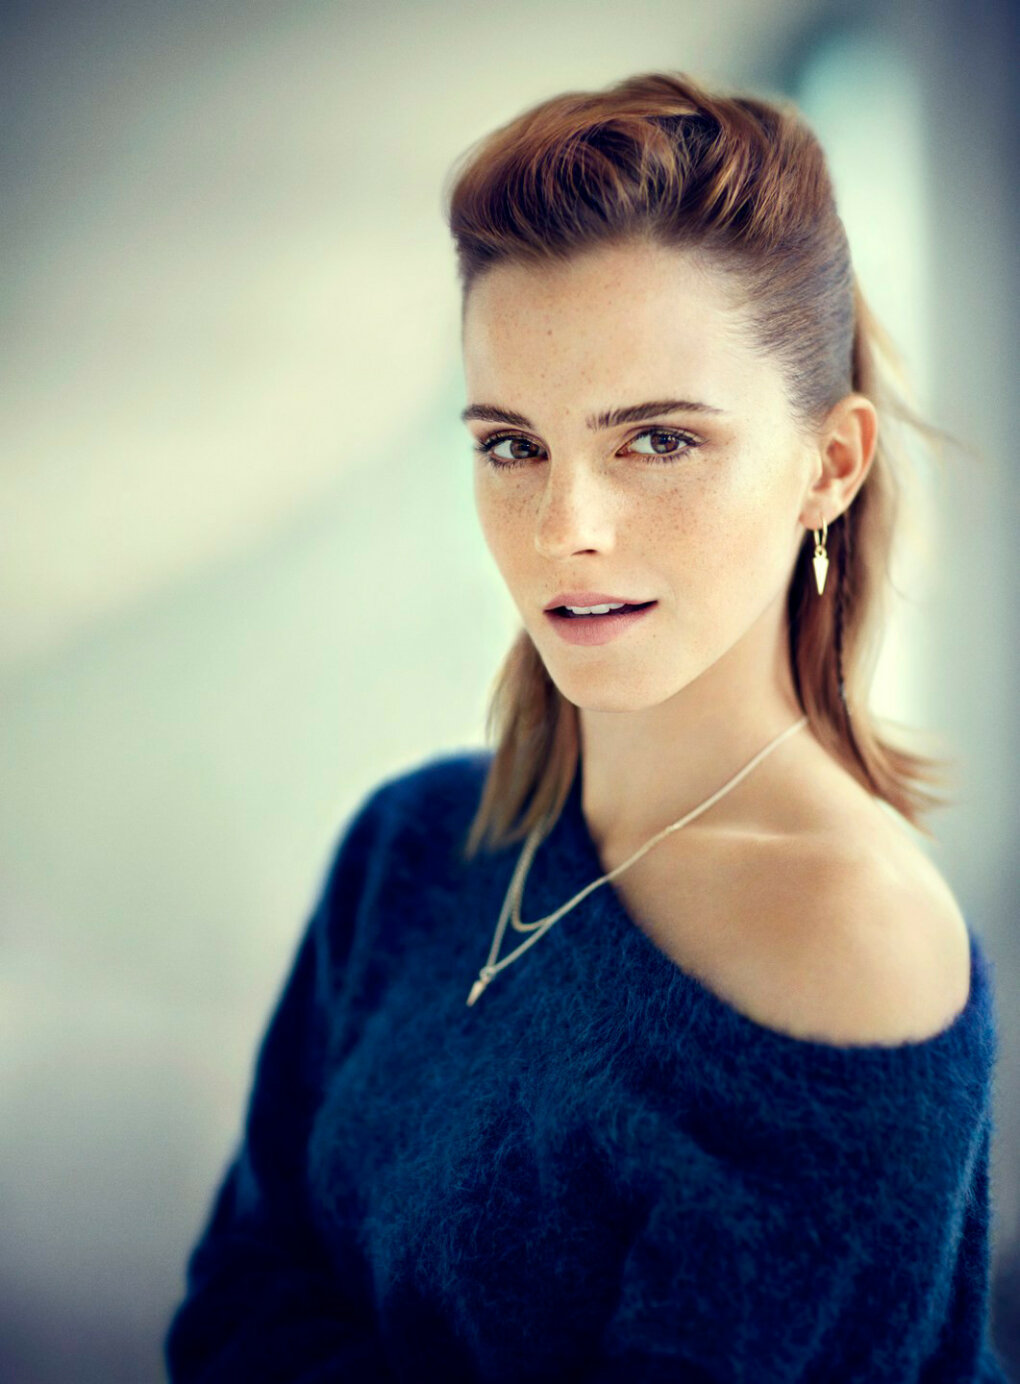 5hchfvo - the sexiest photos of emma watson's body (30+ photos)